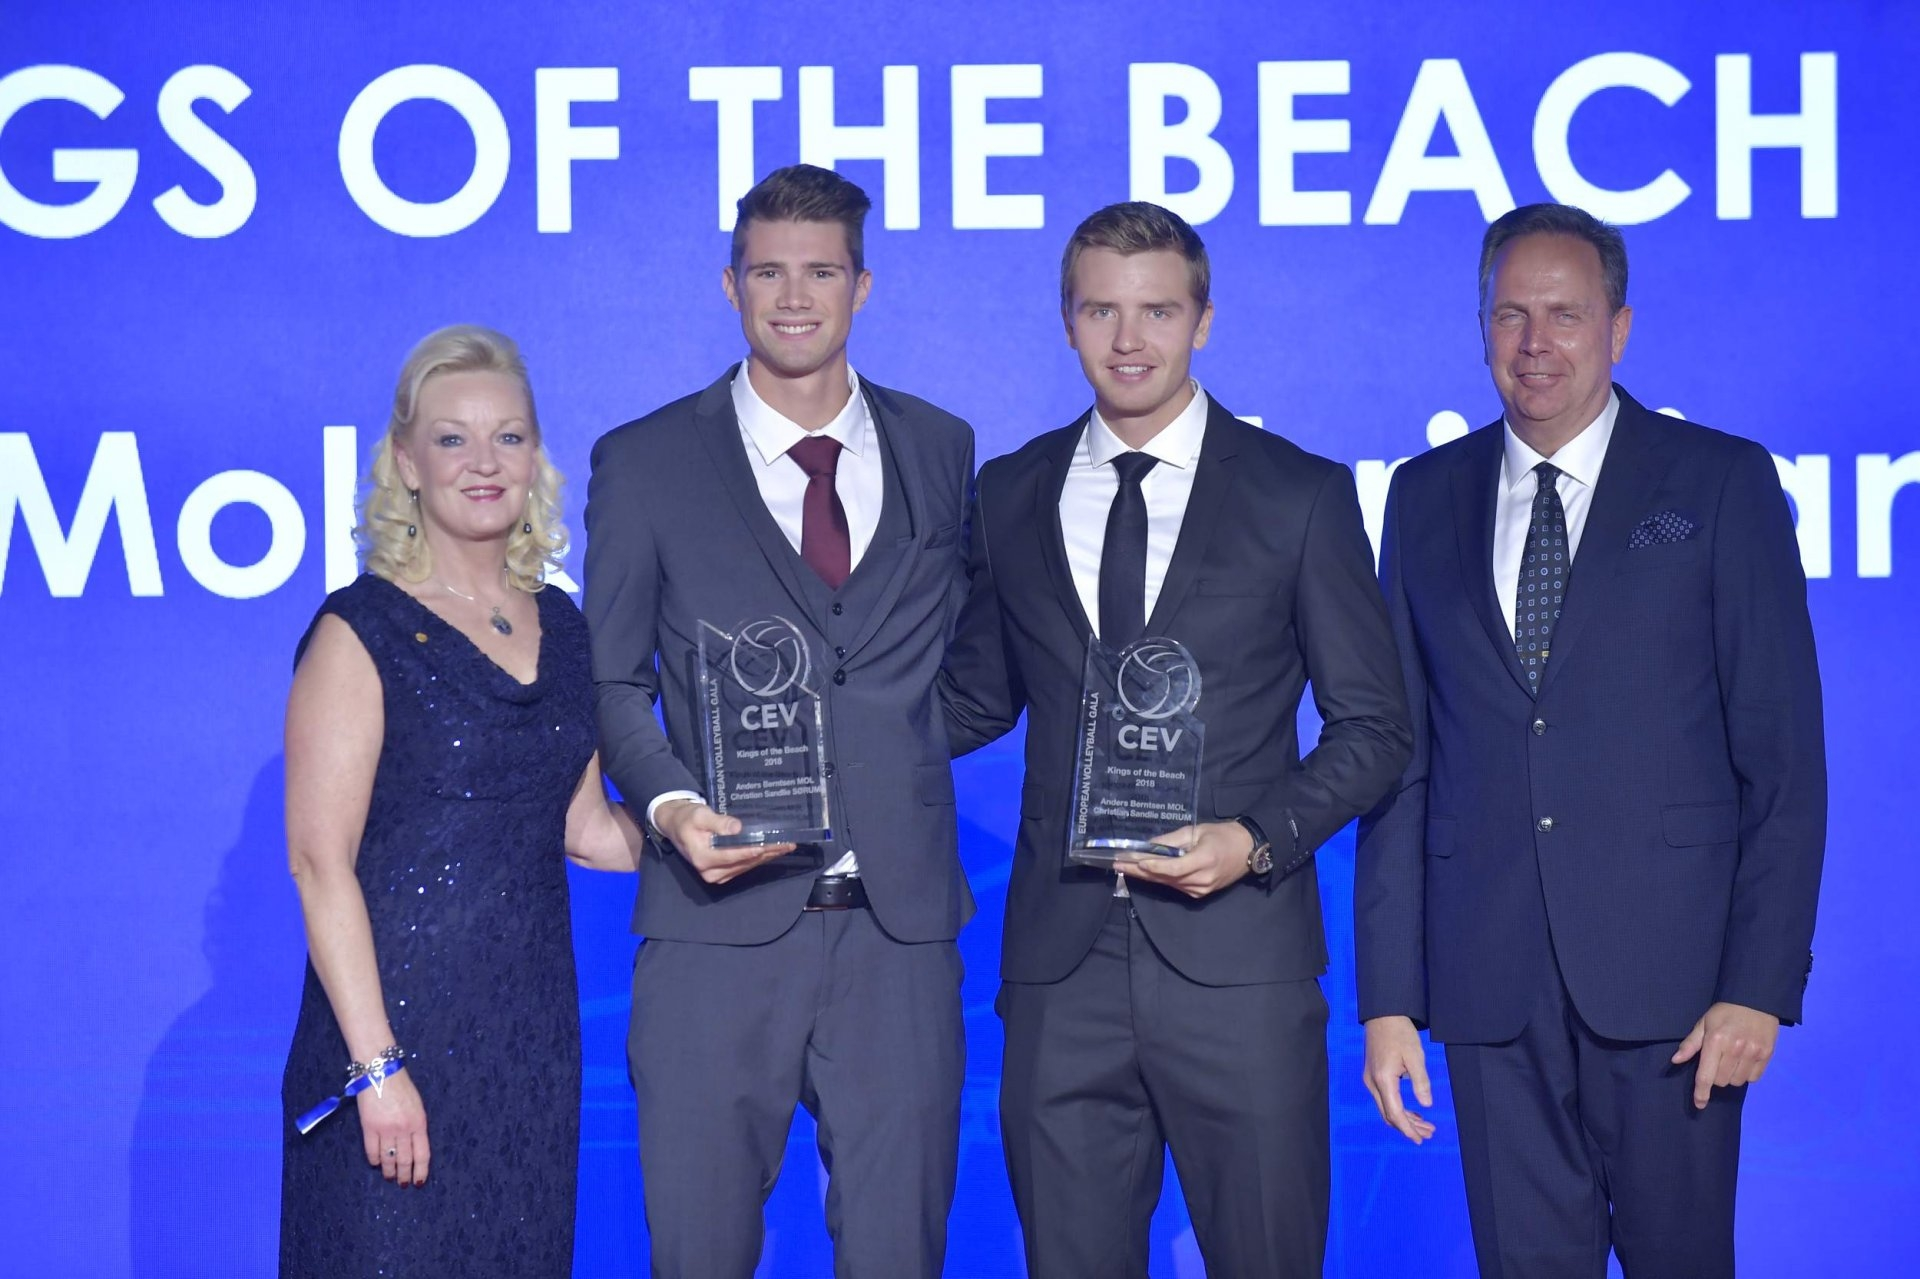 Mol and Sørum took home another trophy after the CEV Gala (Photocredit: CEV)